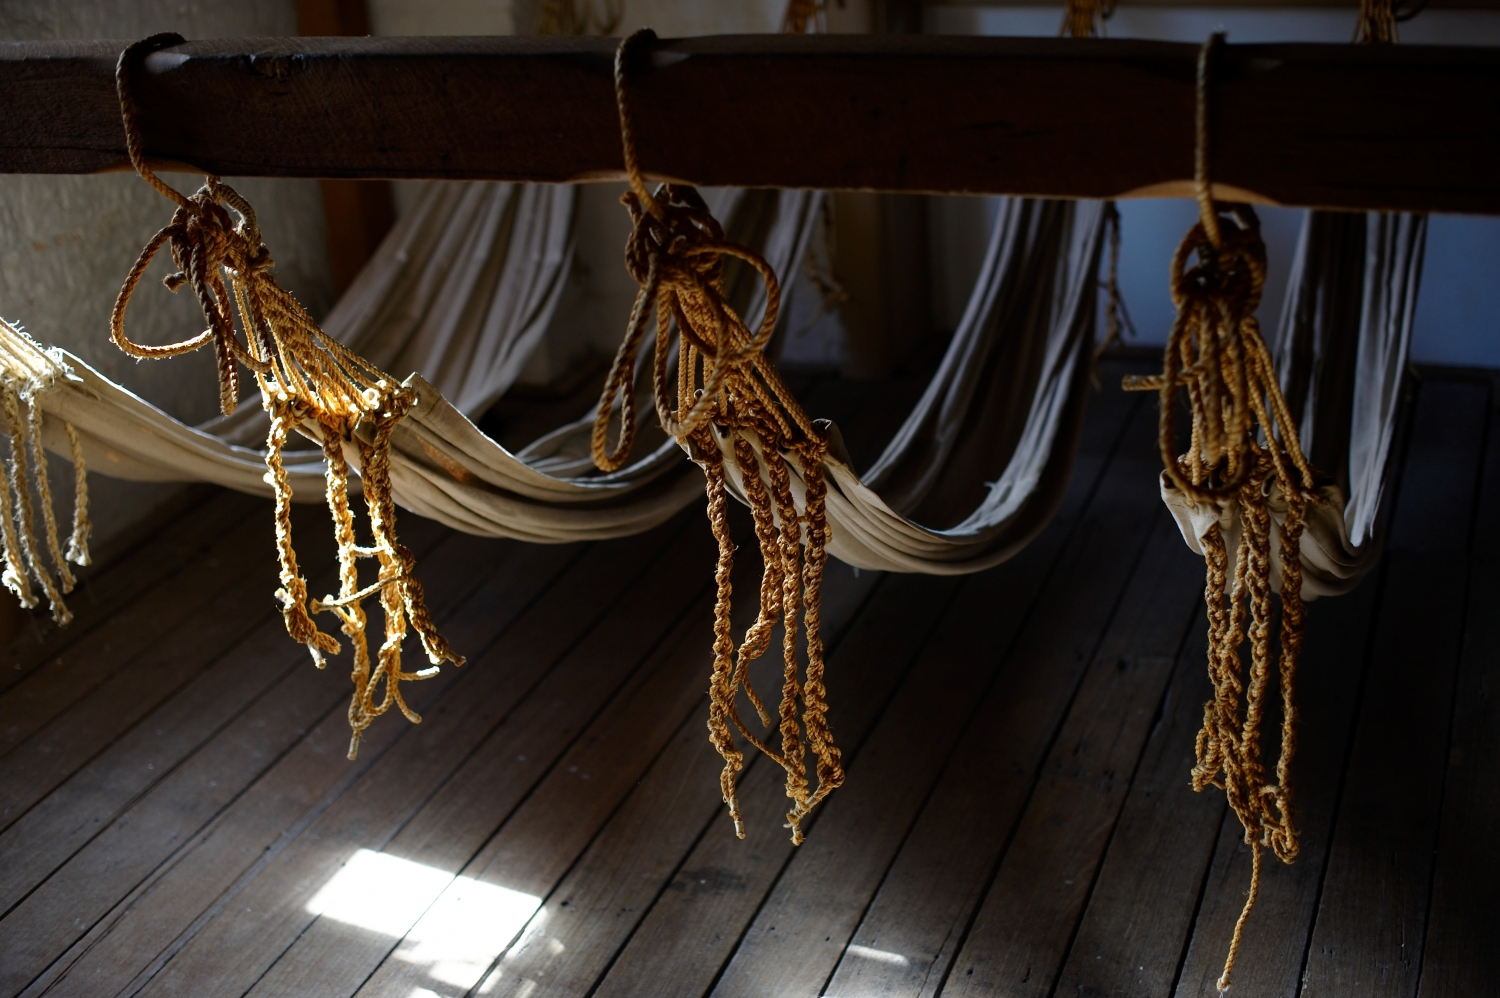 Closeup of hammocks showing rope attachments to beam.